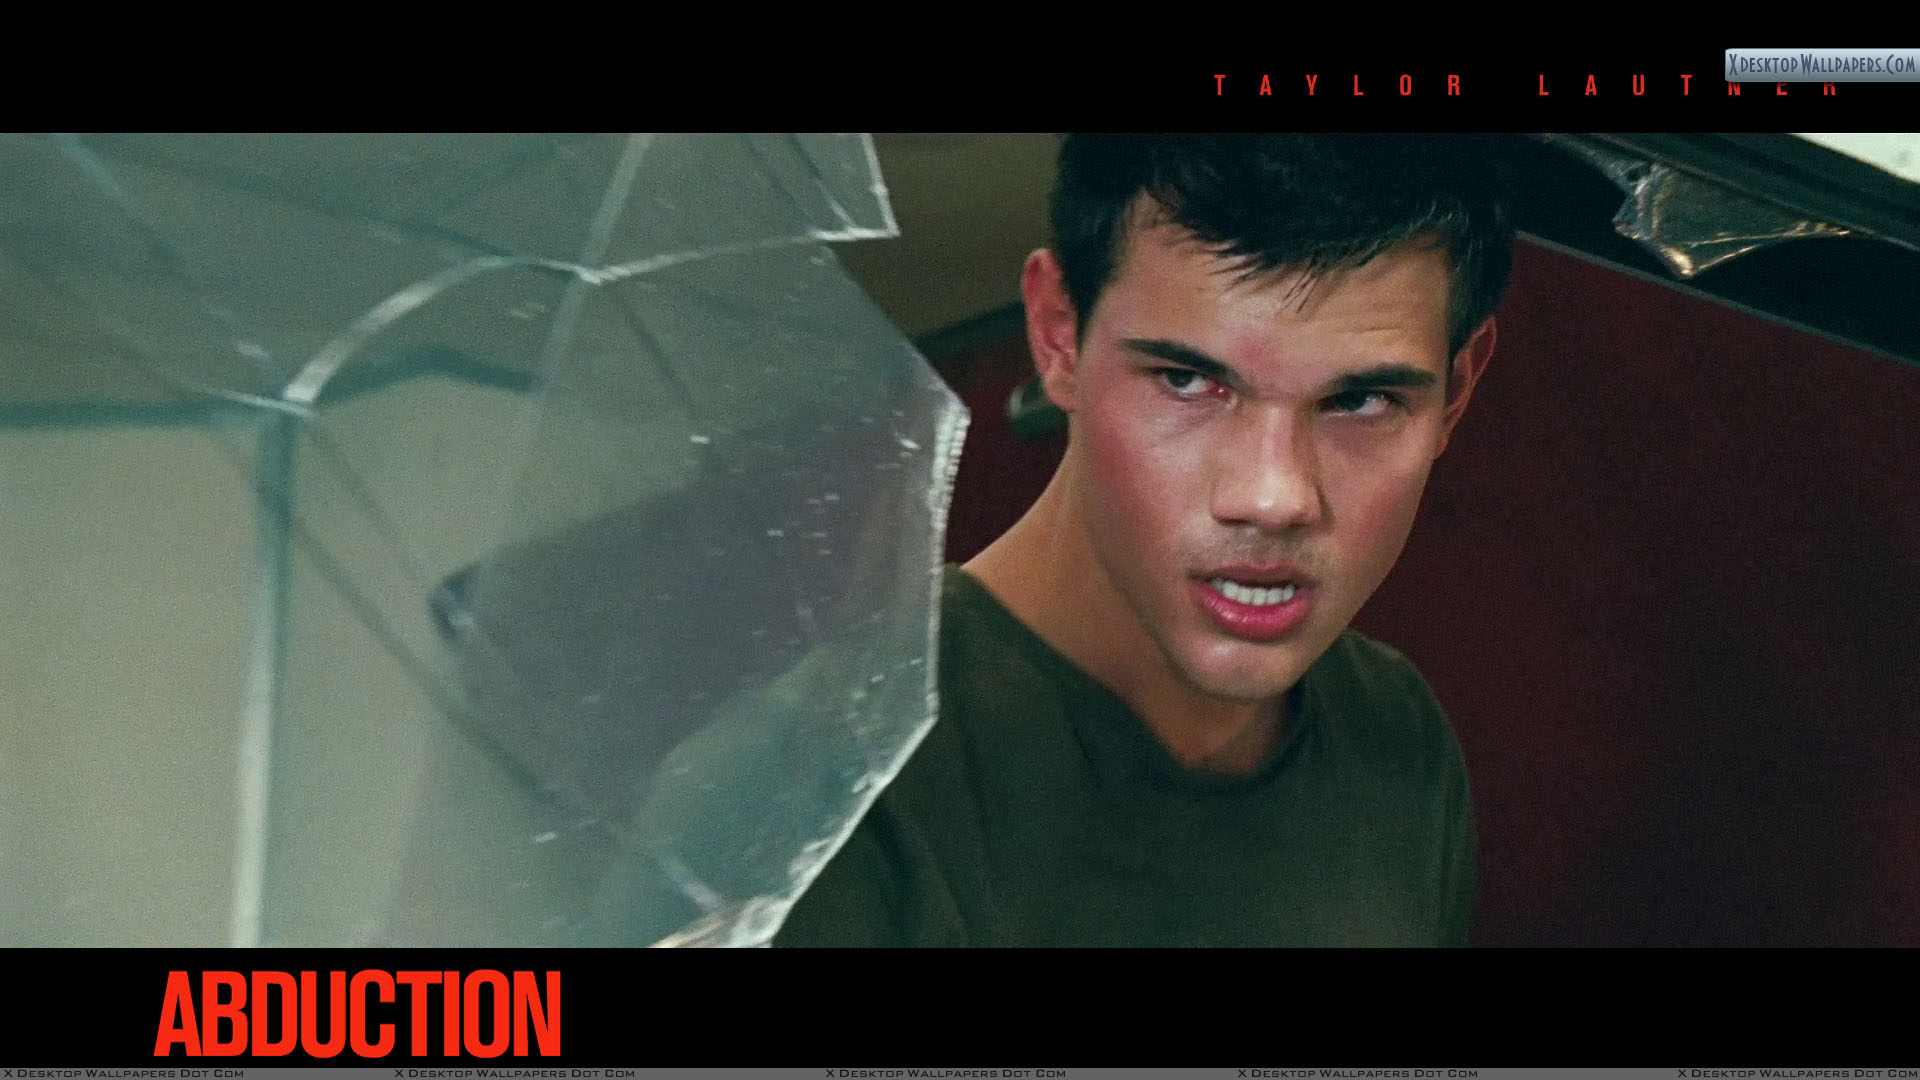 Abduction Wallpapers, ... Taylor Lautner Abduction